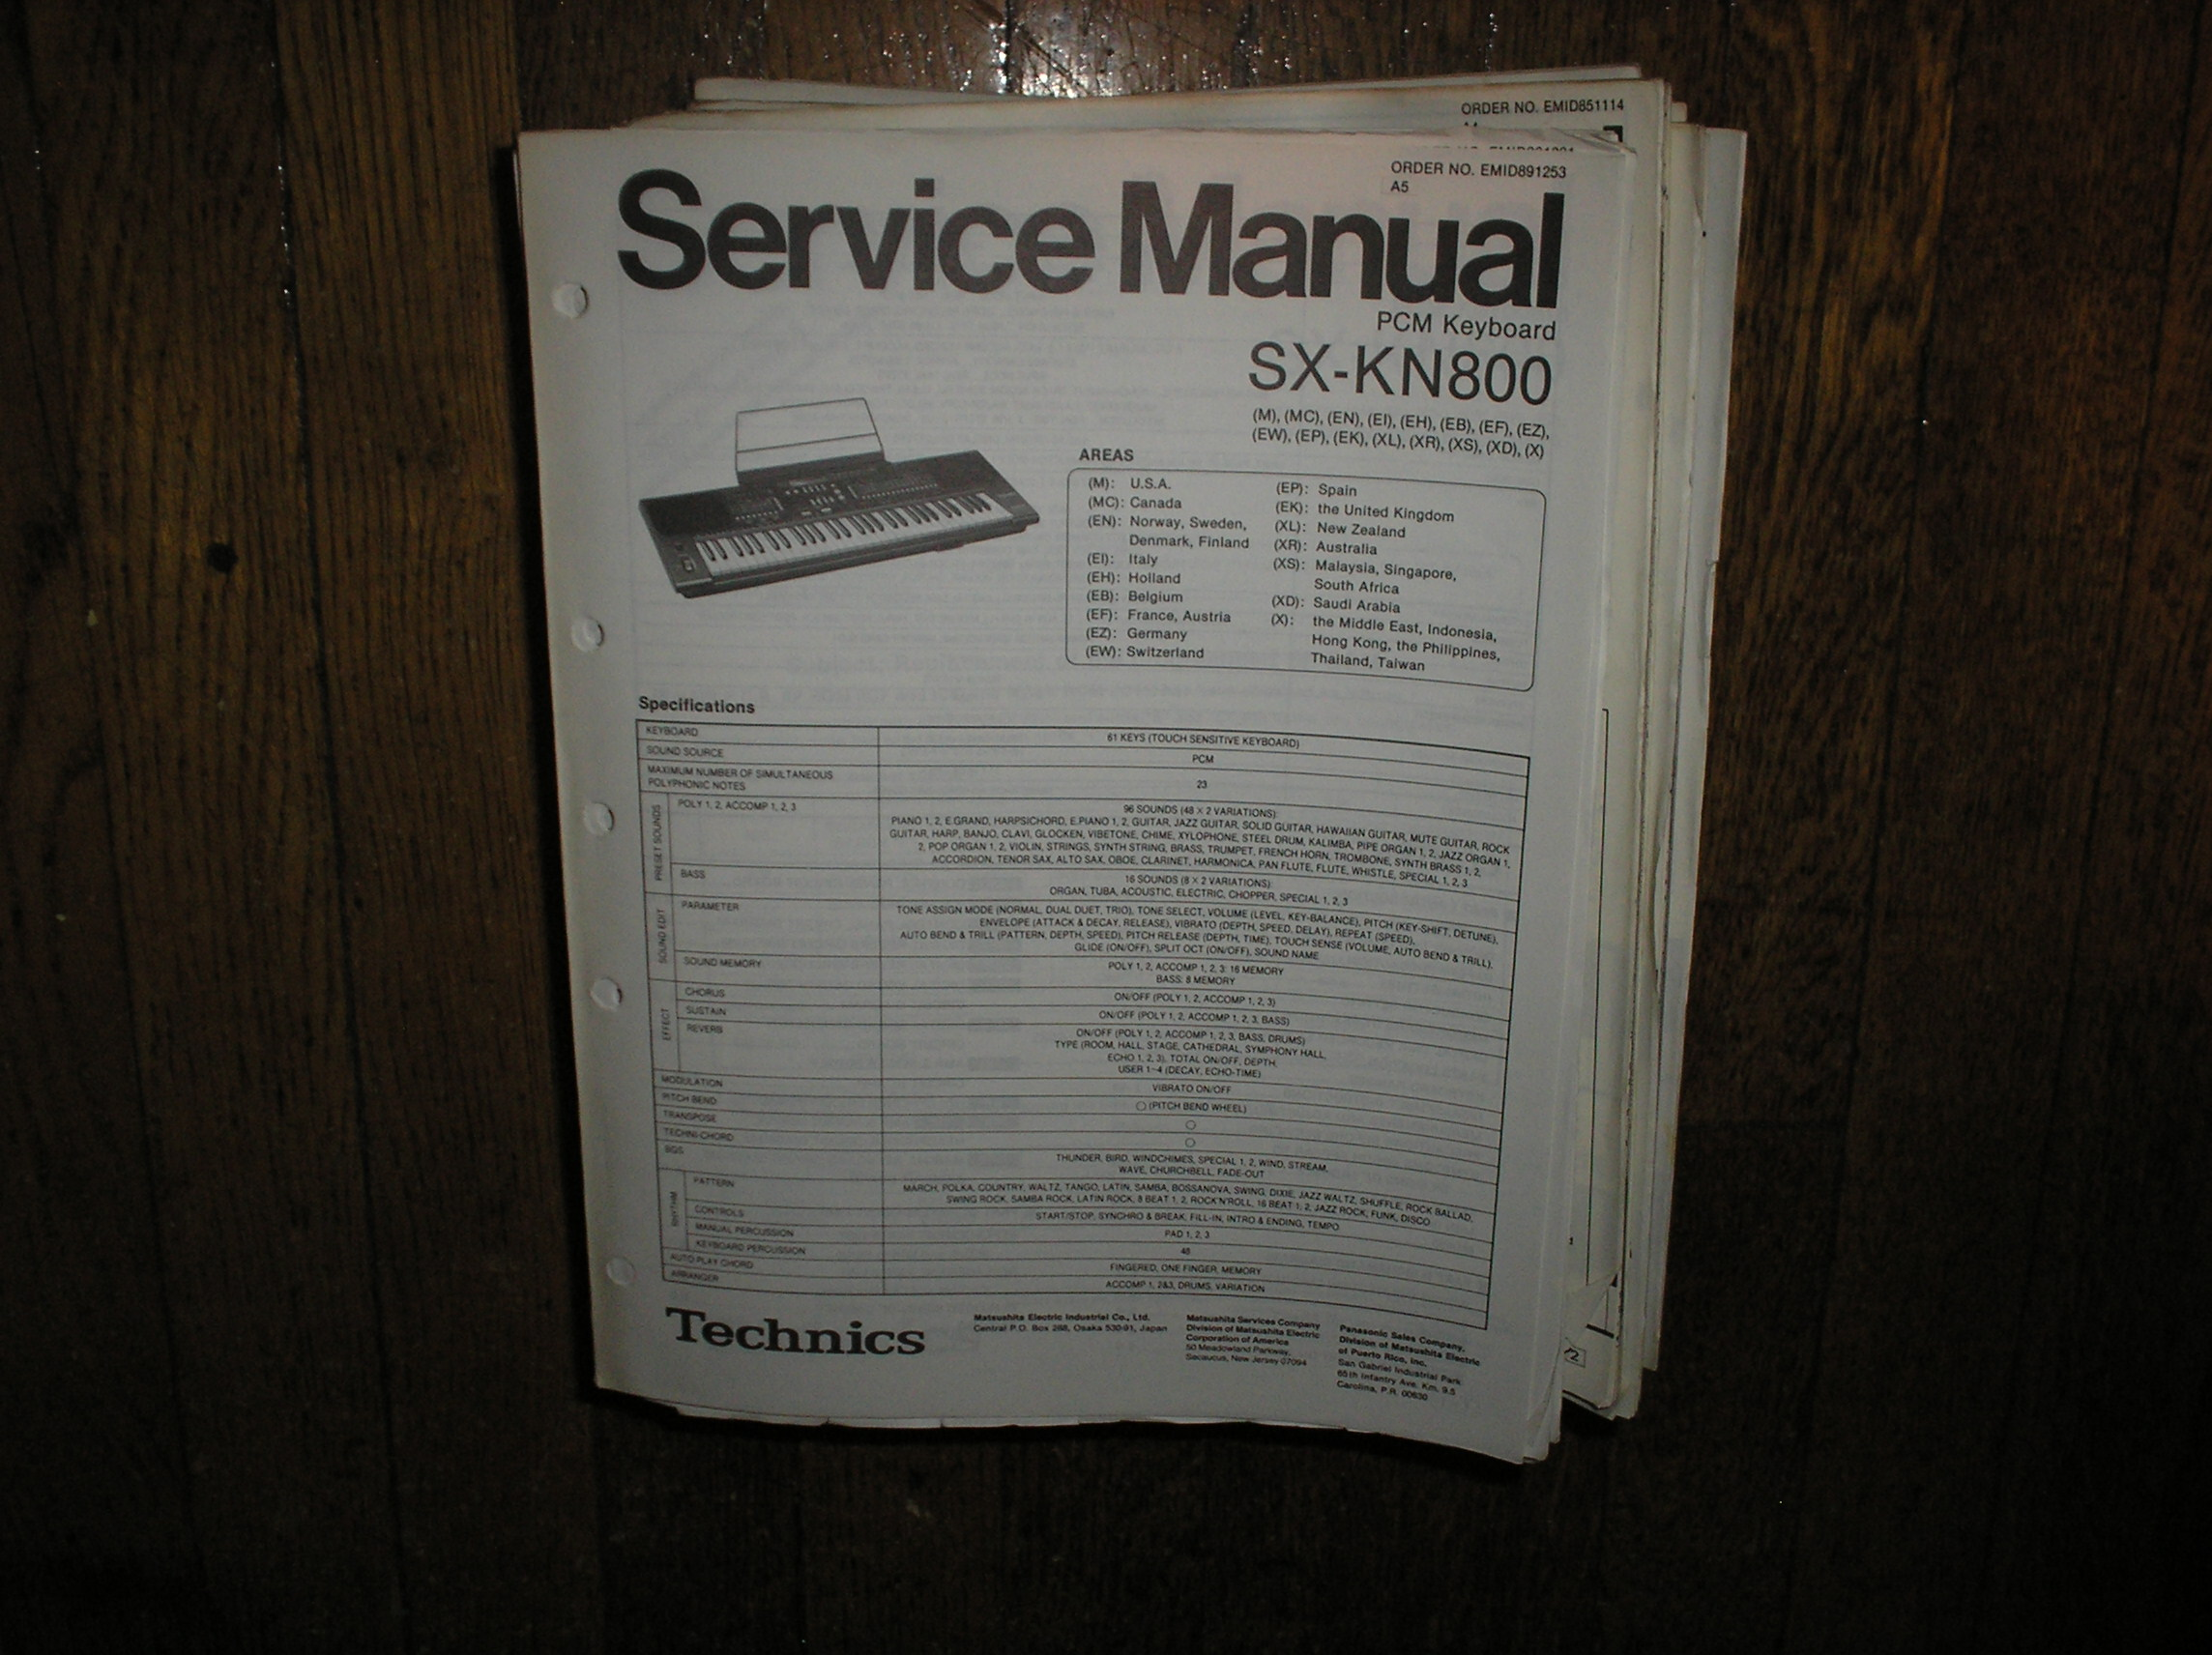 SX-KN800 PCM Keyboard Service Manual